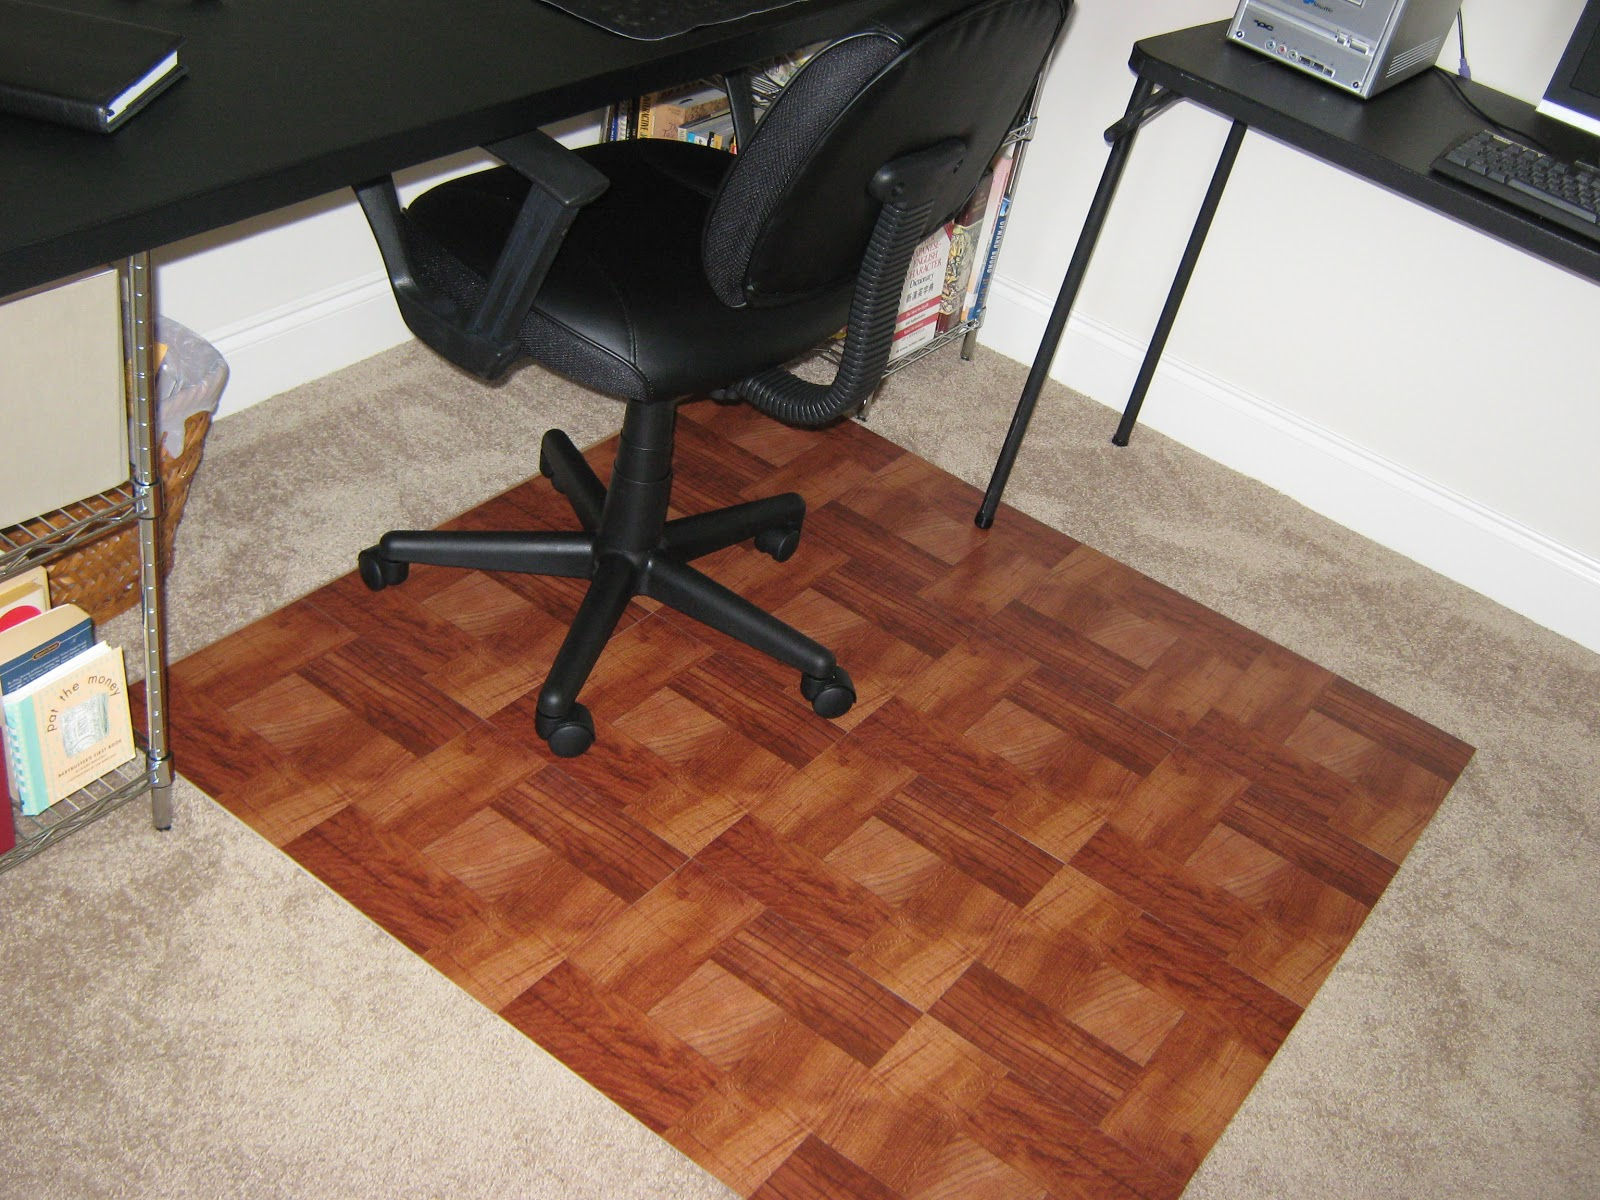 floors hardwood hard seat pad for full plastic mat size carpet floor under car thick on chair office swivel protector black clear of computer chairs decoration mats desk rubber